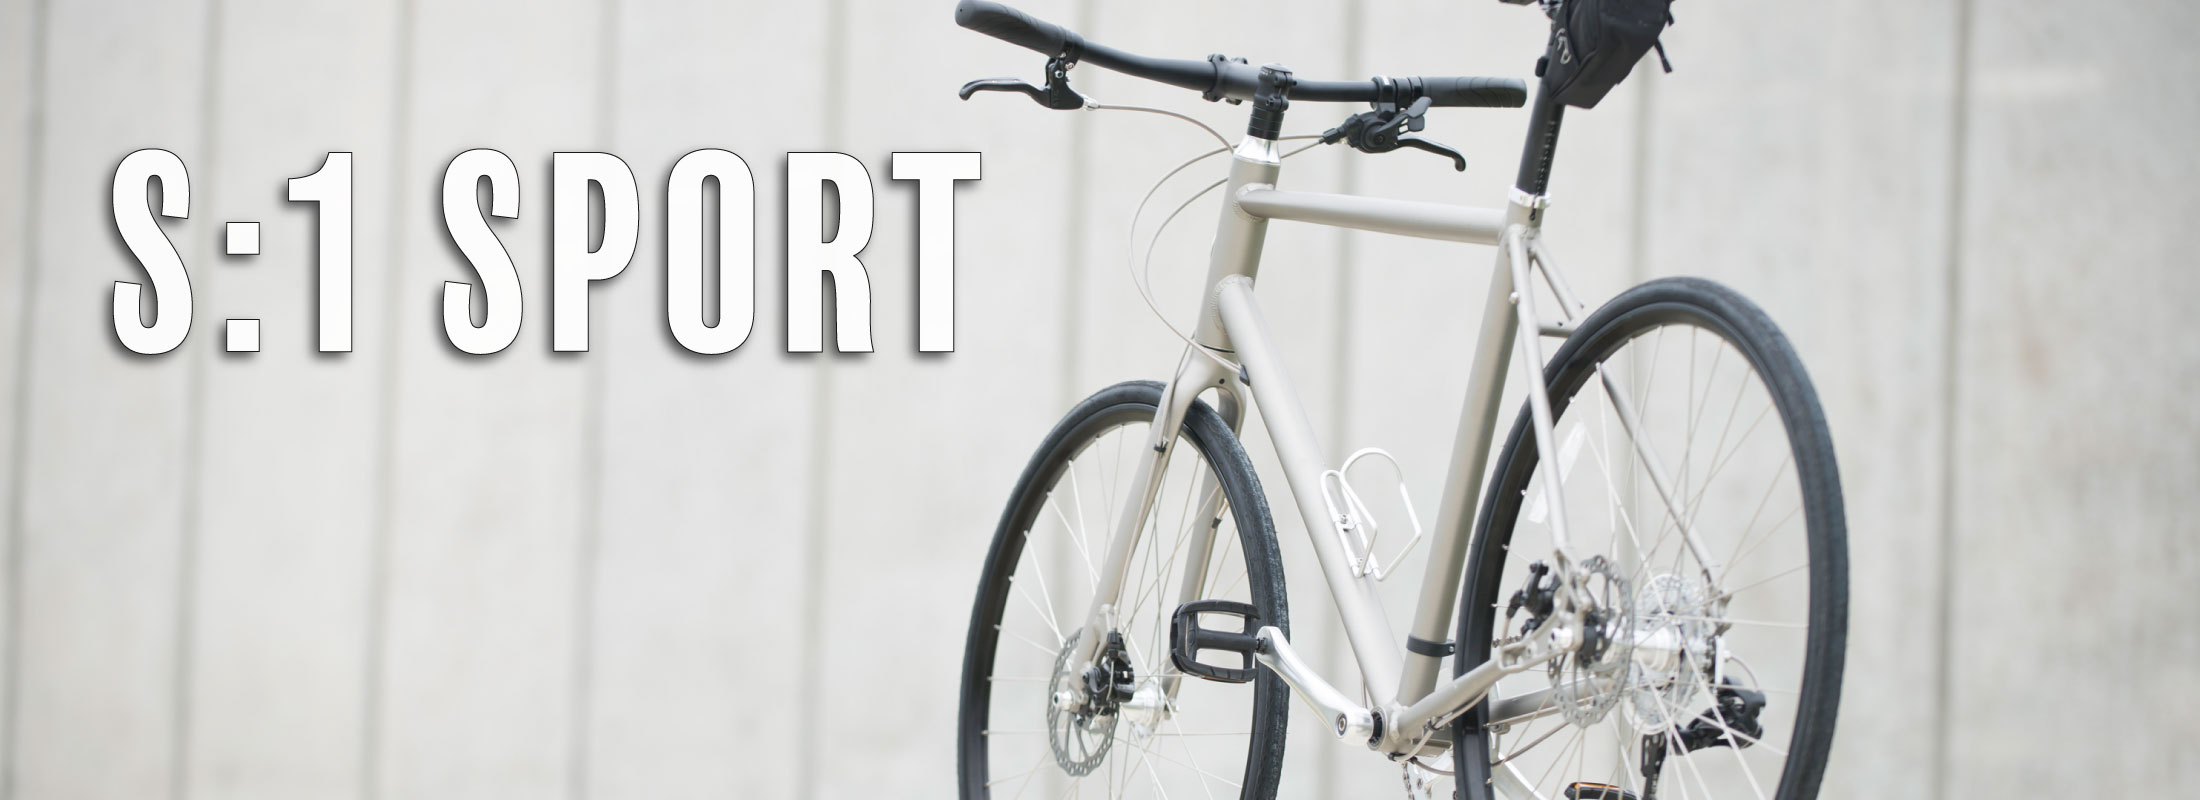 Roll S:1 Sport | The Garage OTR